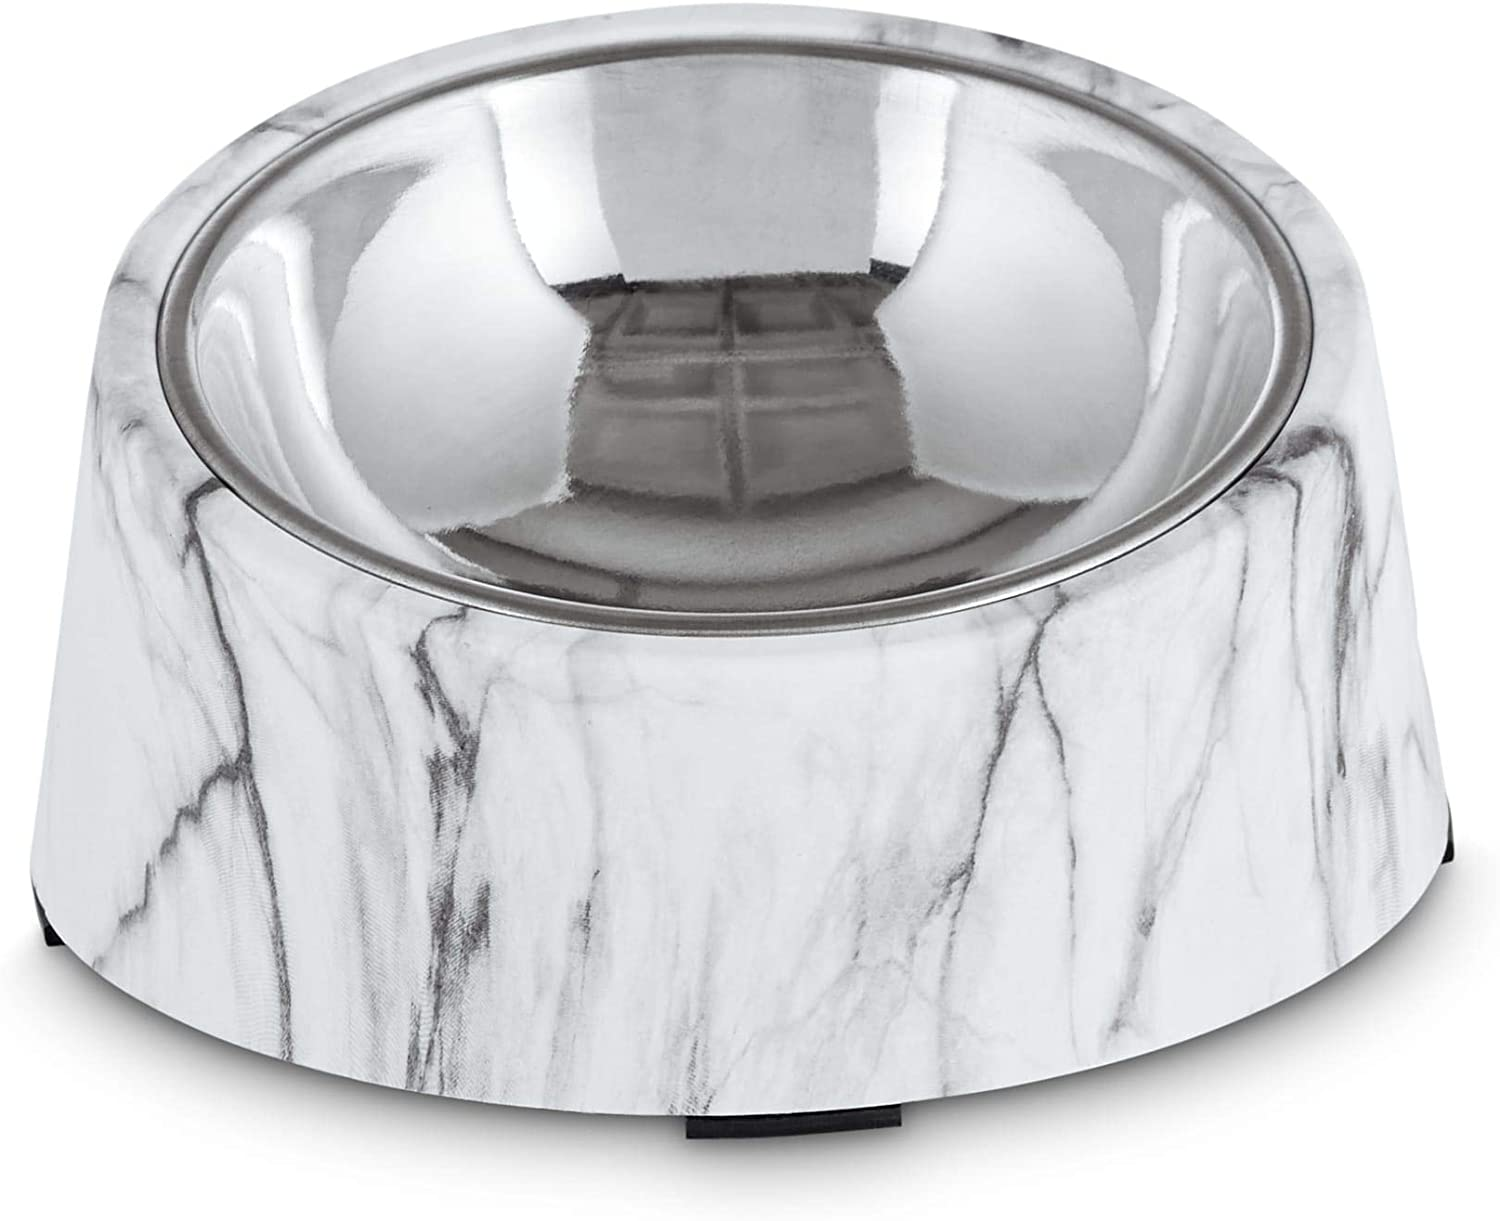 Harmony Slanted Marble-Print Base and Stainless-Steel Dog Bowl Set, 1.7 Cups, Medium, White